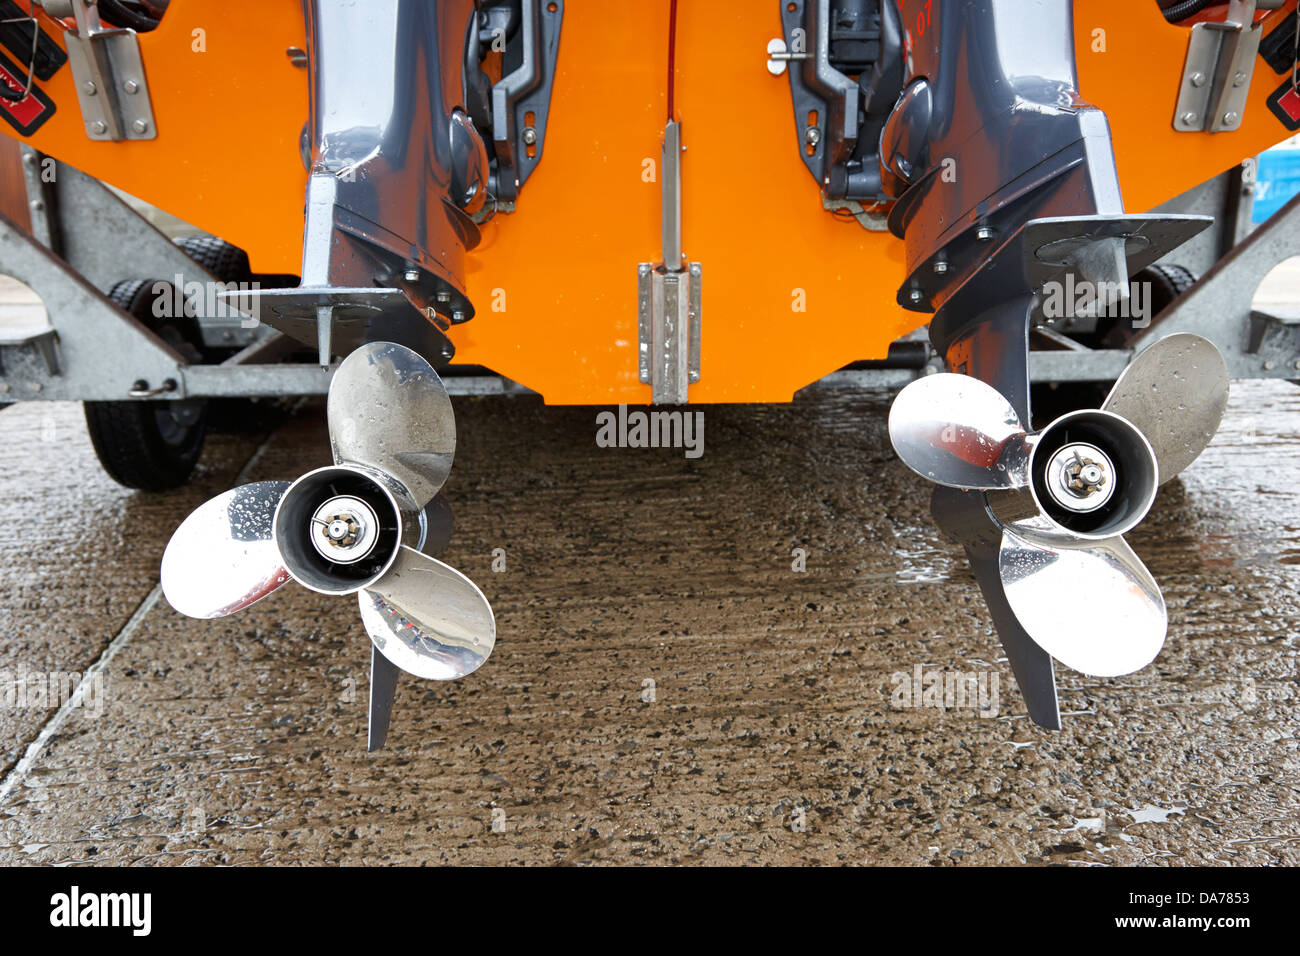 twin yamaha propellers on four stroke outboard engines on rnli lifeboat county down northern ireland uk - Stock Image